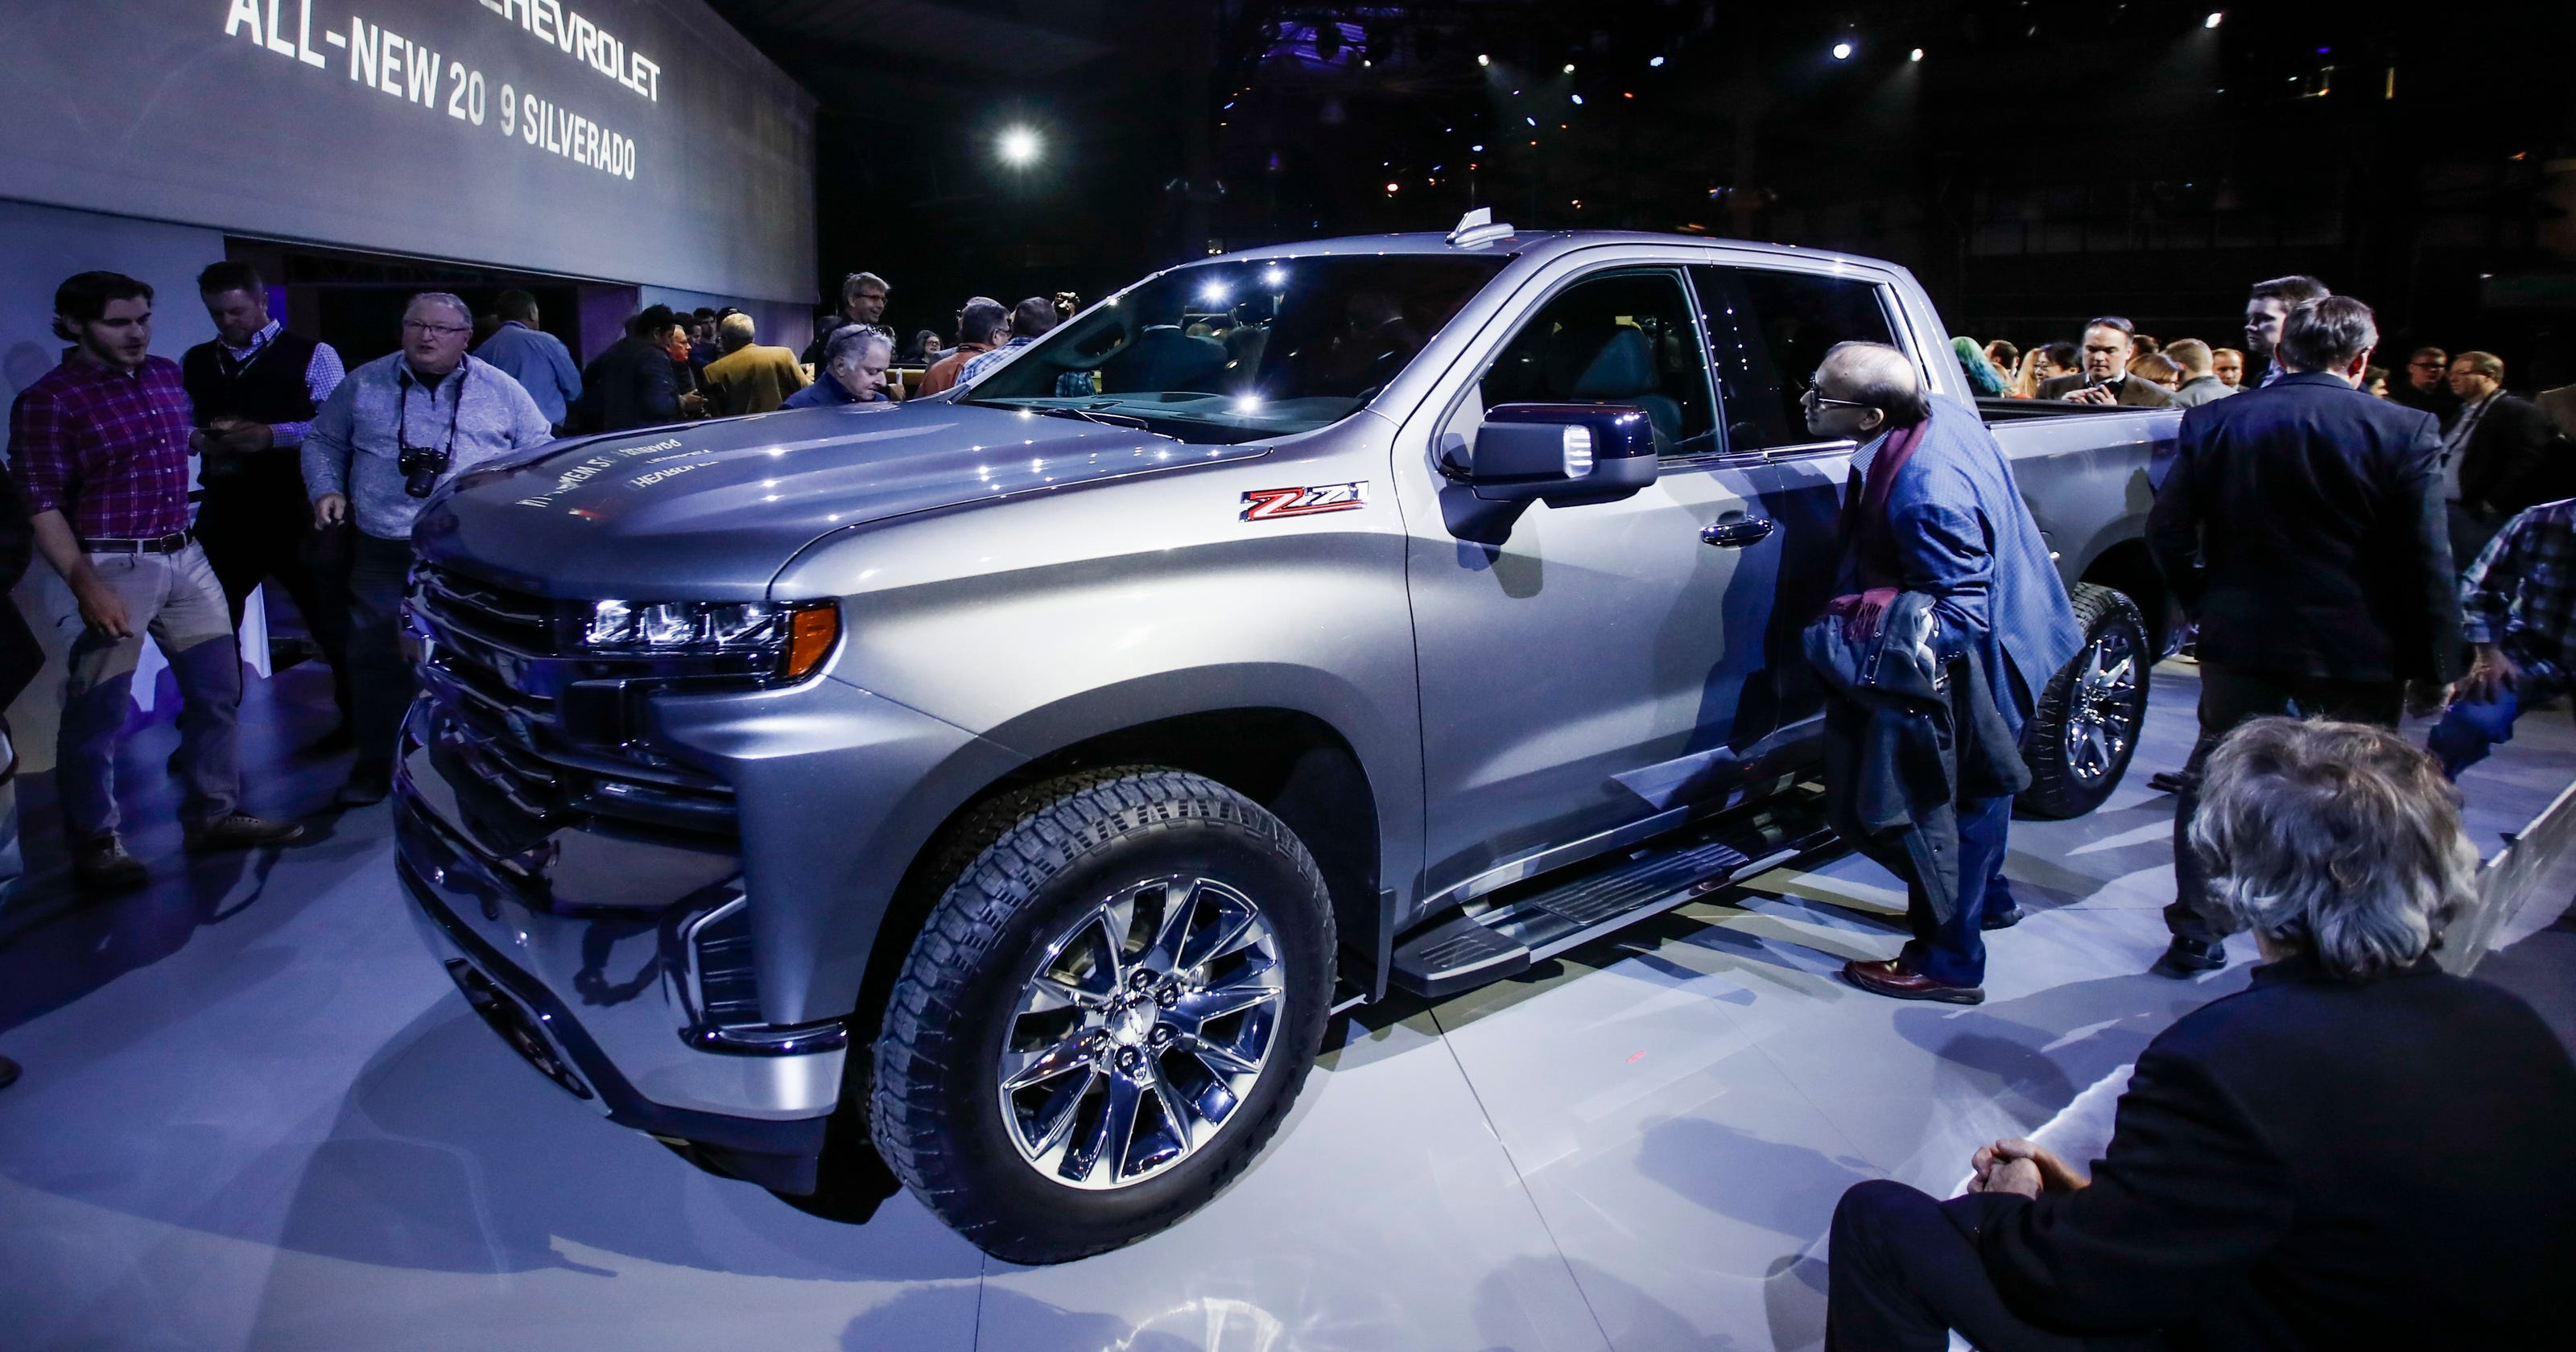 New Car Prices Used Cars For Sale Auto: U.S. New-vehicle Sales Likely Hurt By January's Winter